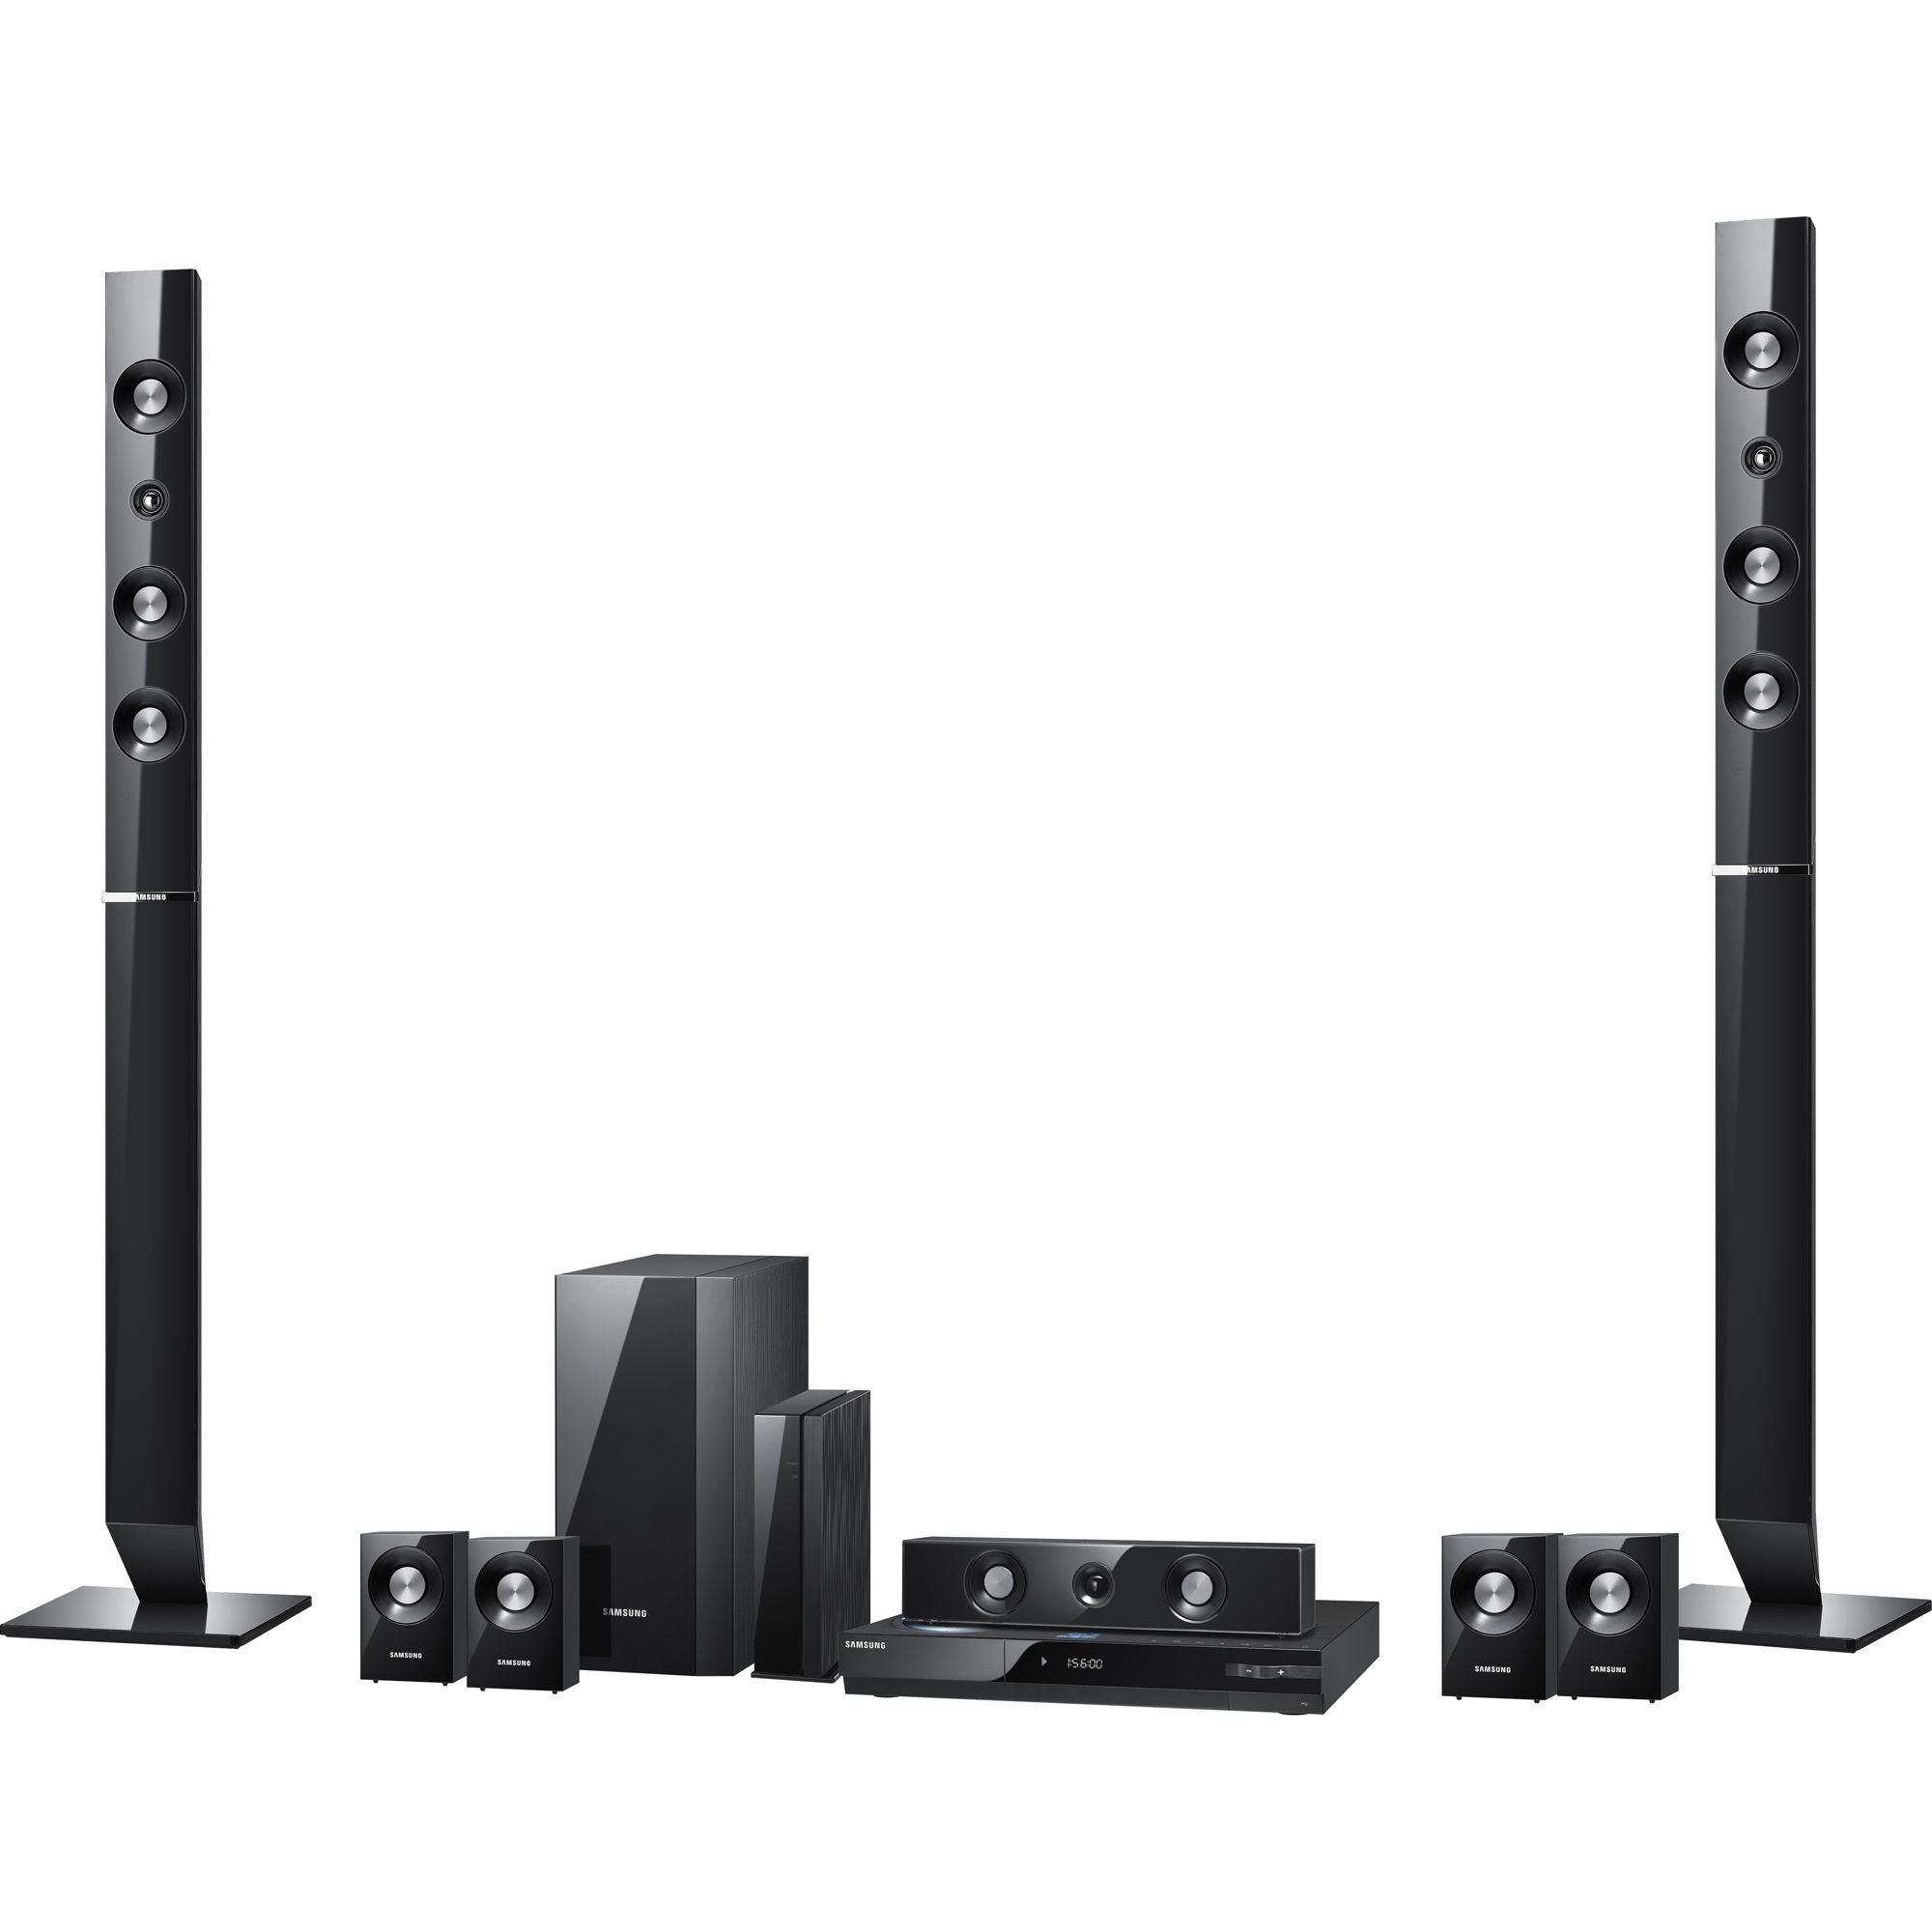 Buy Samsung Audio Systems - Samsung 7.1 Channel  Surround Sound Blu-ray Home Theater System